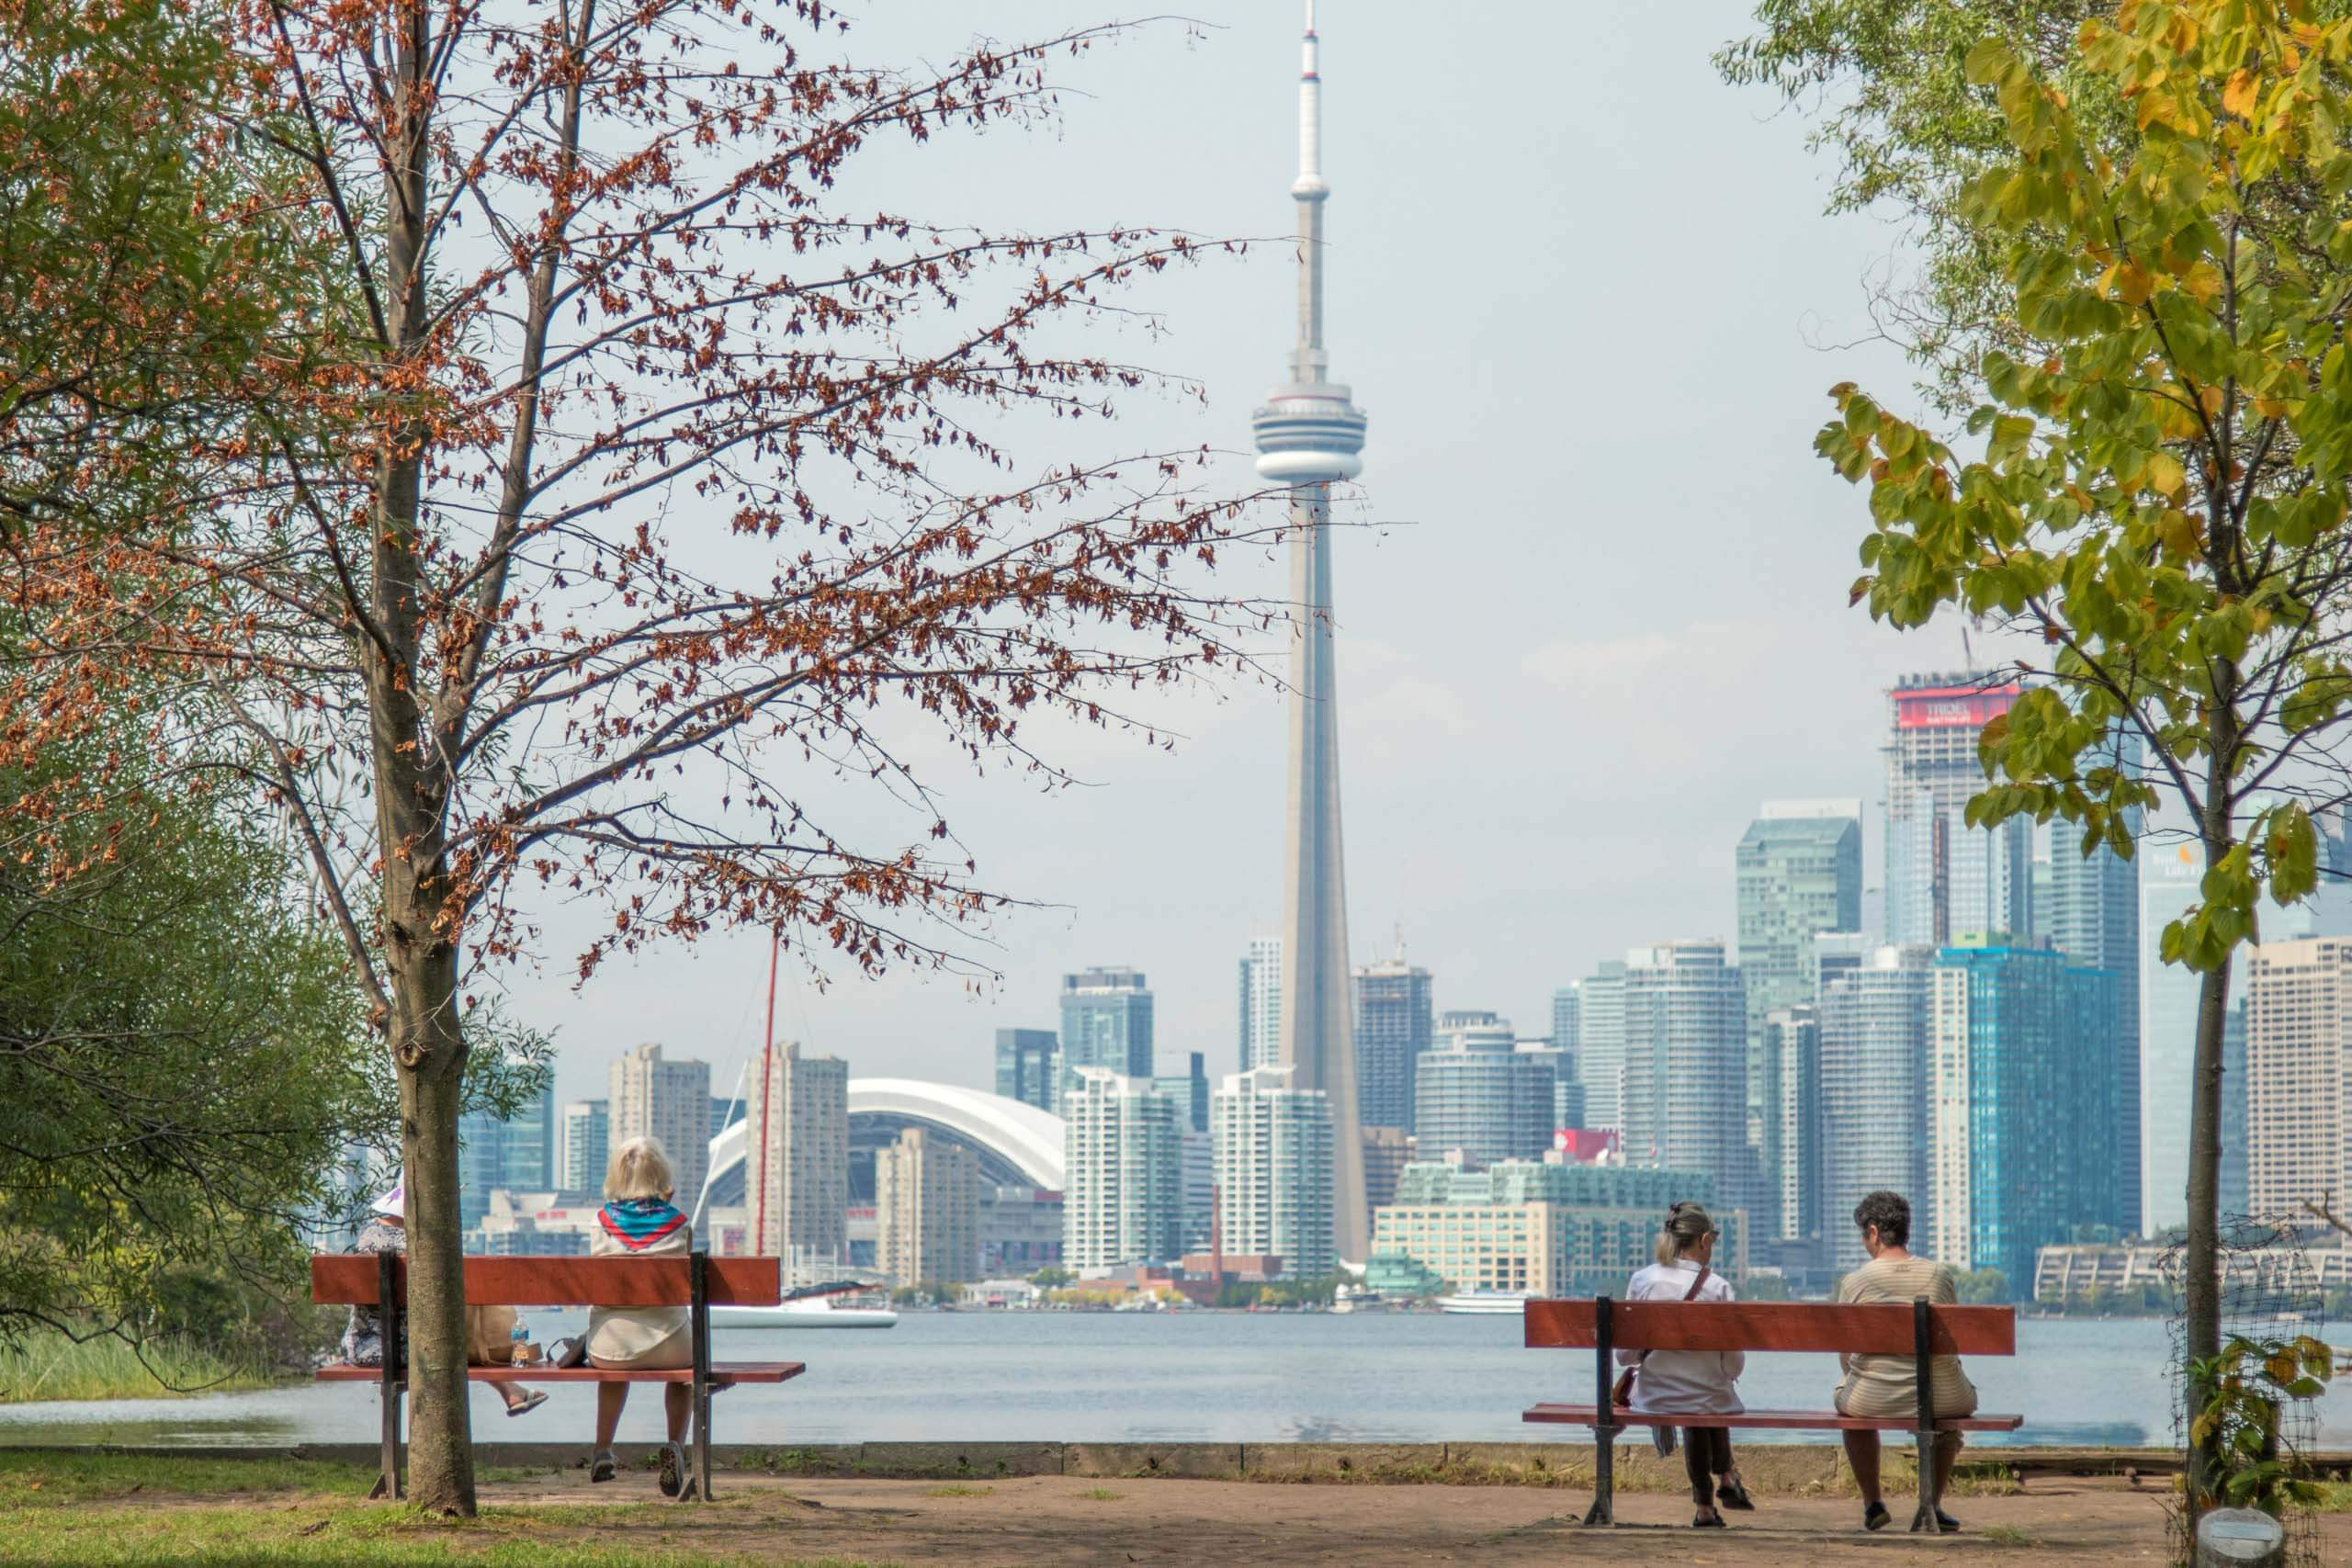 People sitting on park benches on Toronto Island looking at the city